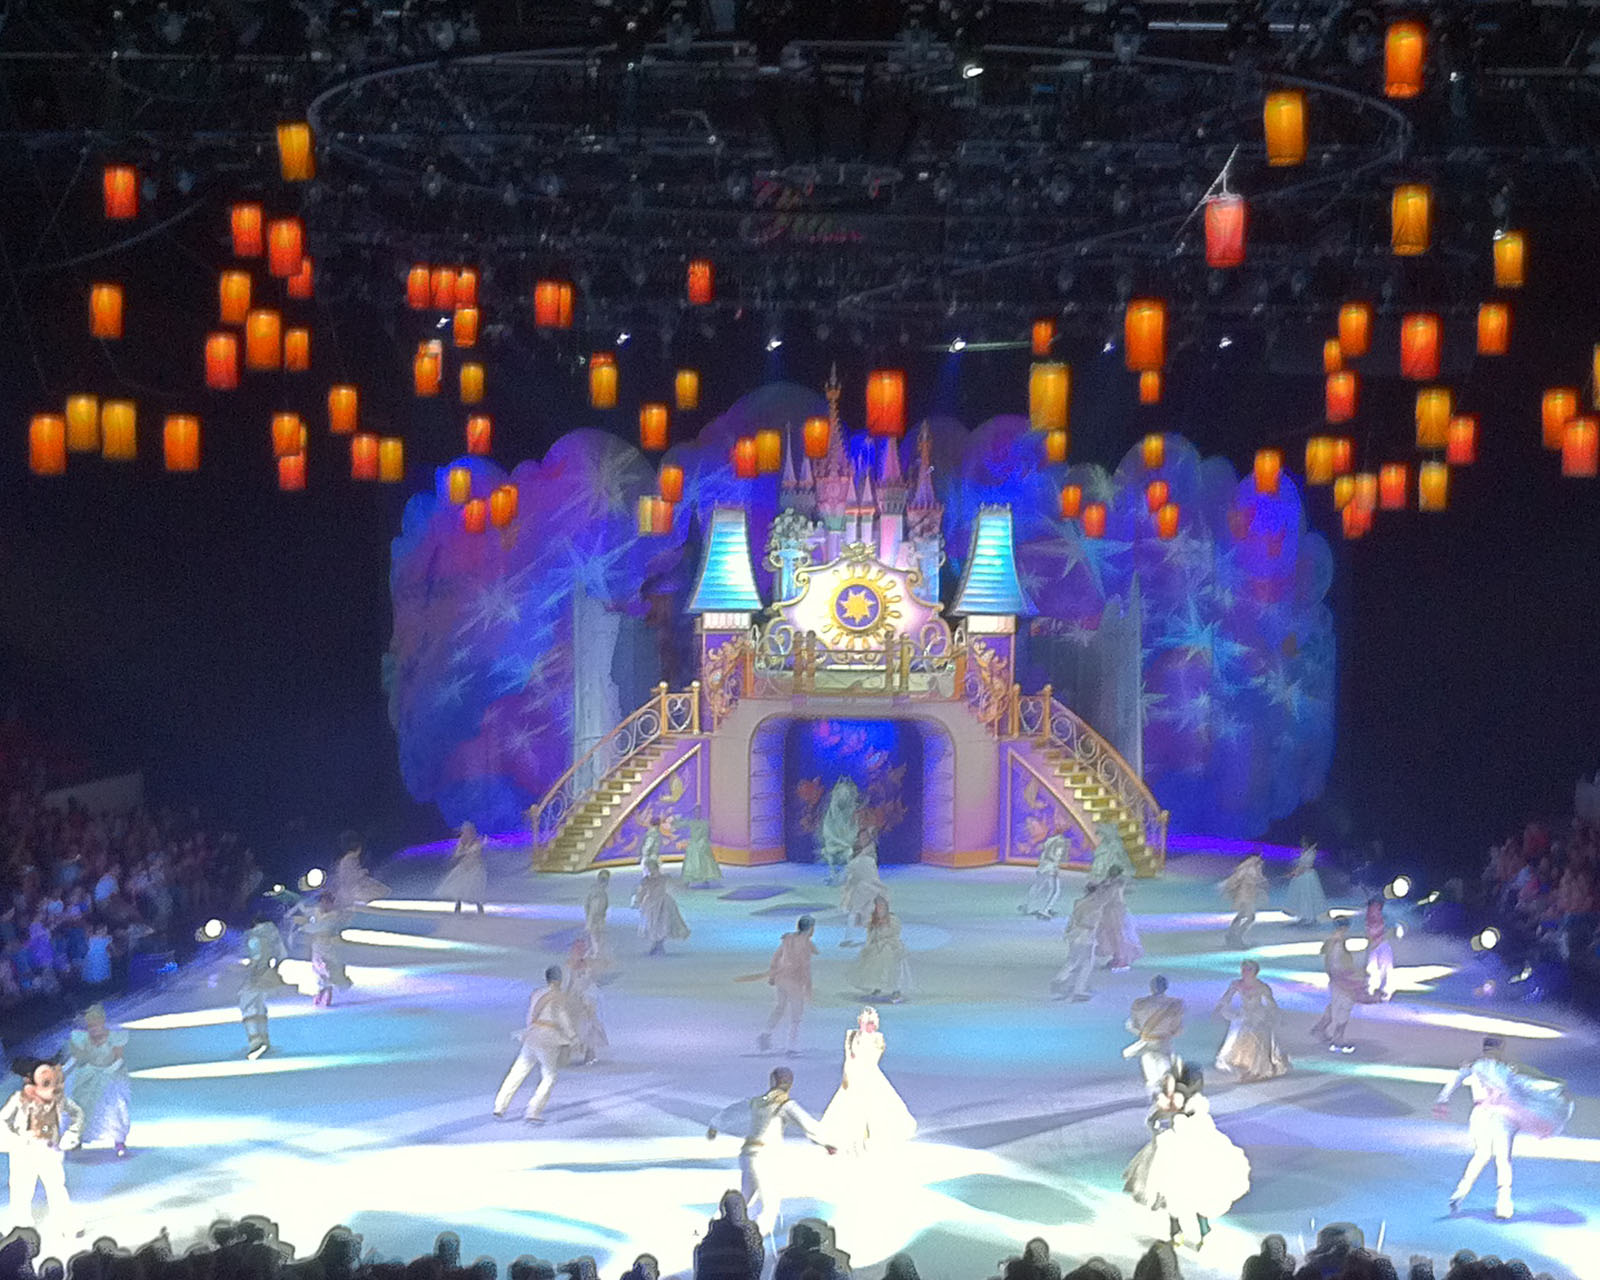 Stairs on the castle open up and lanterns waft across the sky above the ice for the big finale.